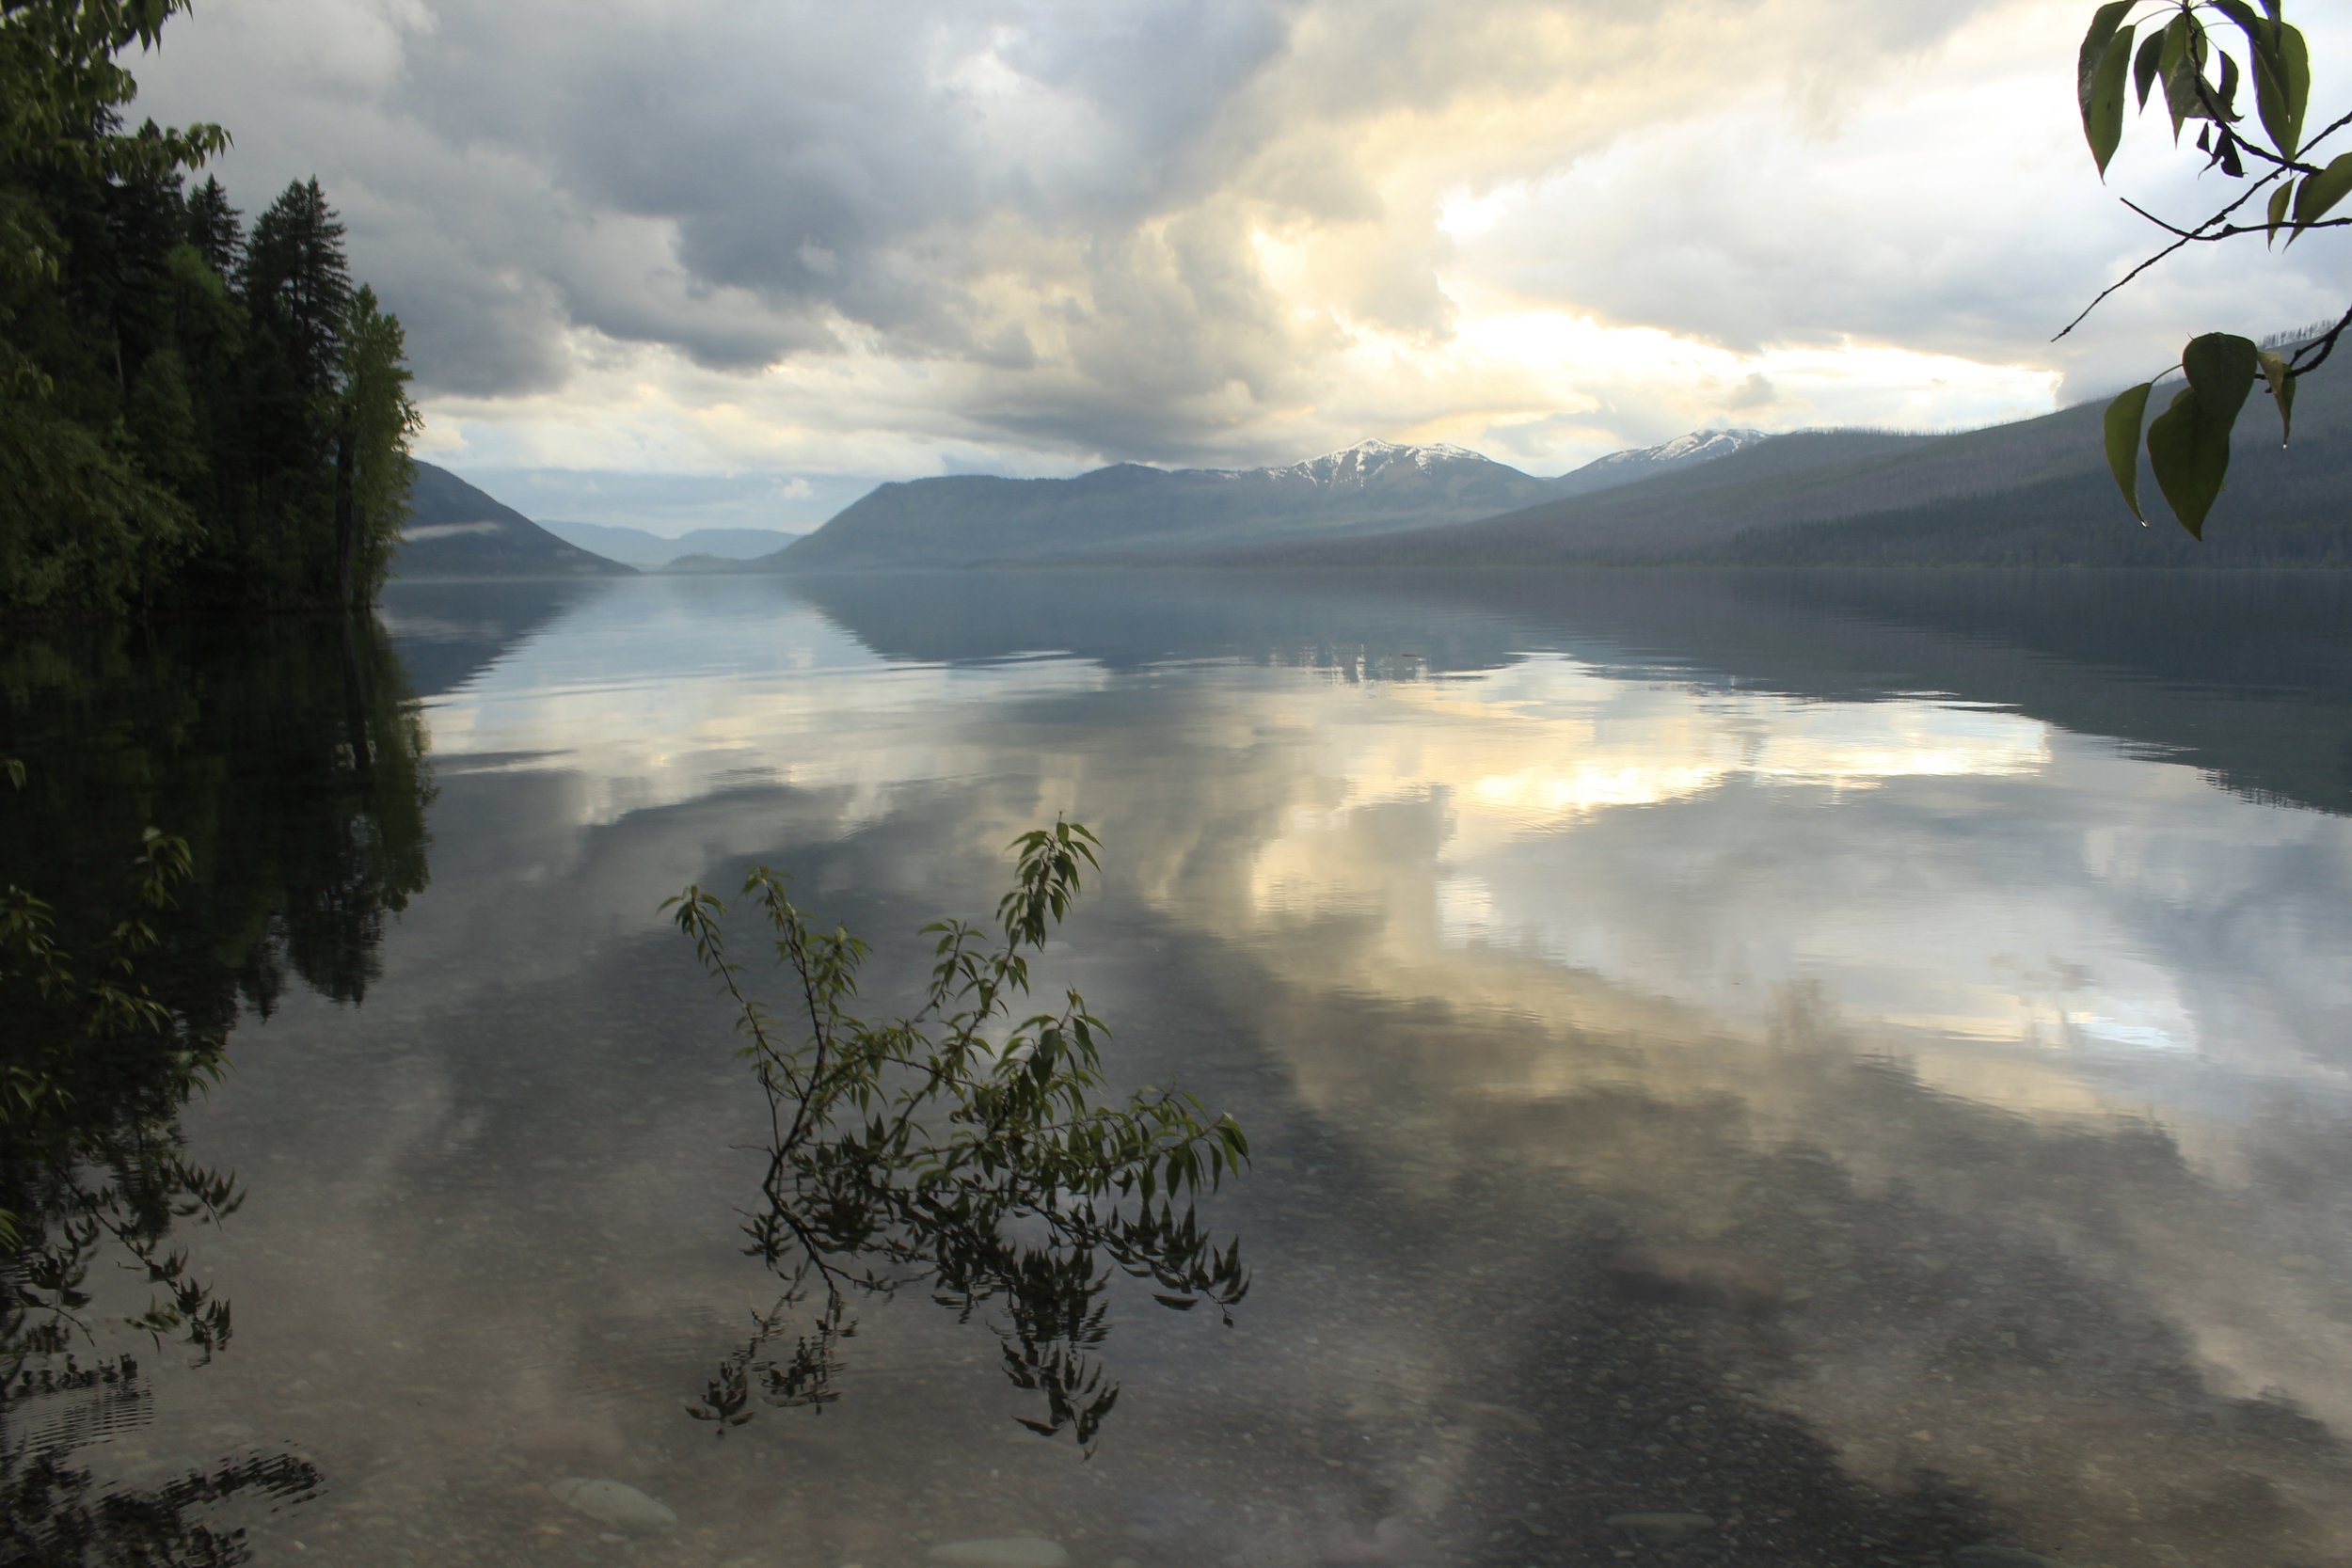 Paddle across the mirror-like Lake McDonald